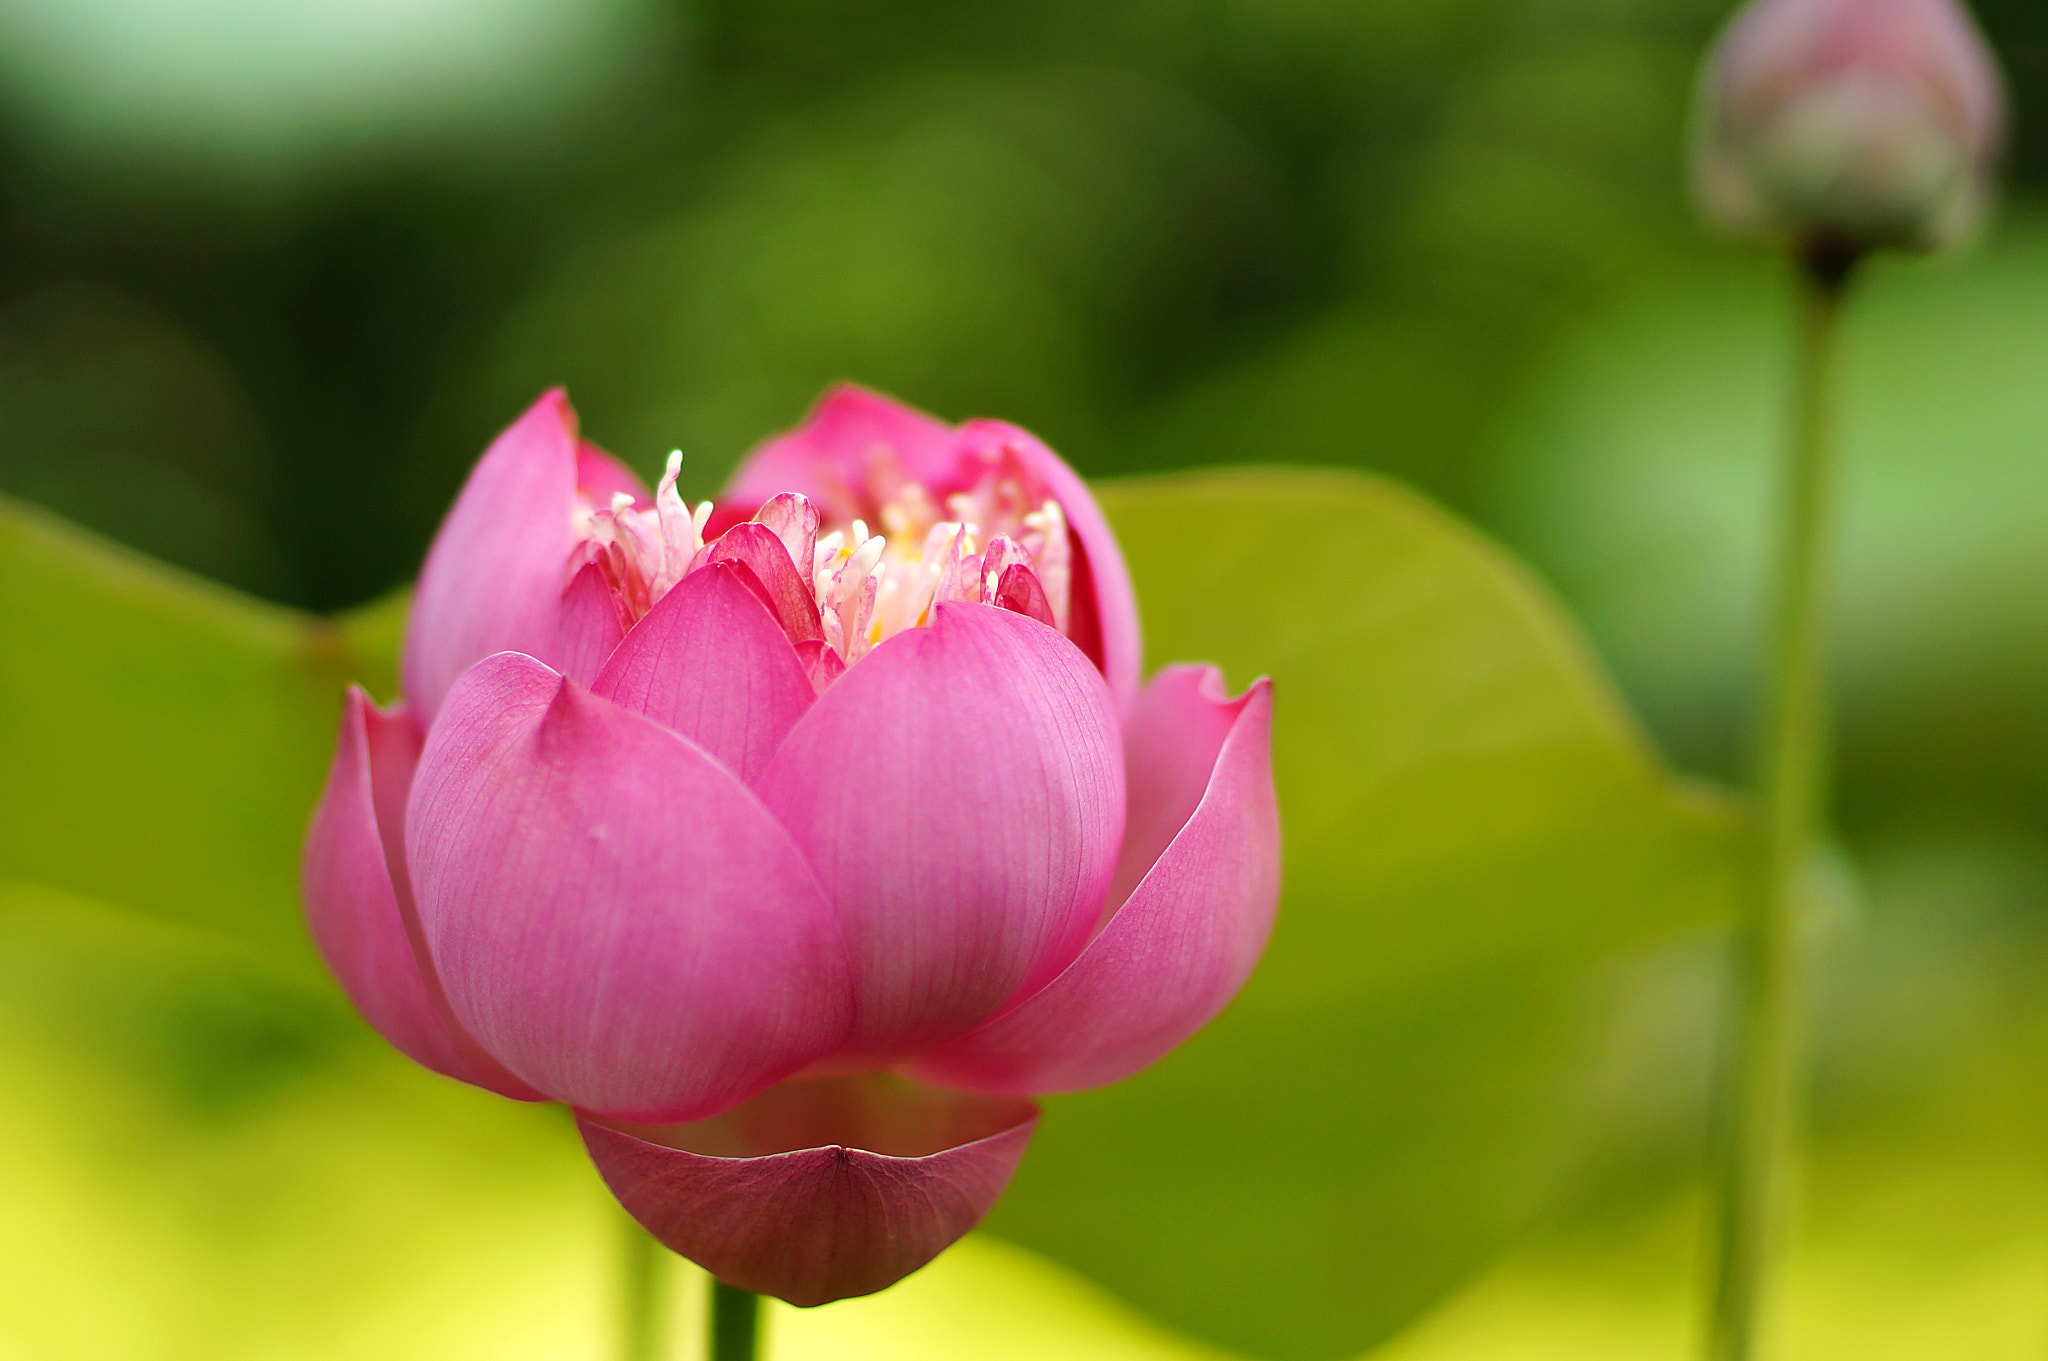 Photograph Adult lotus :)  by Diep Nguyen on 500px